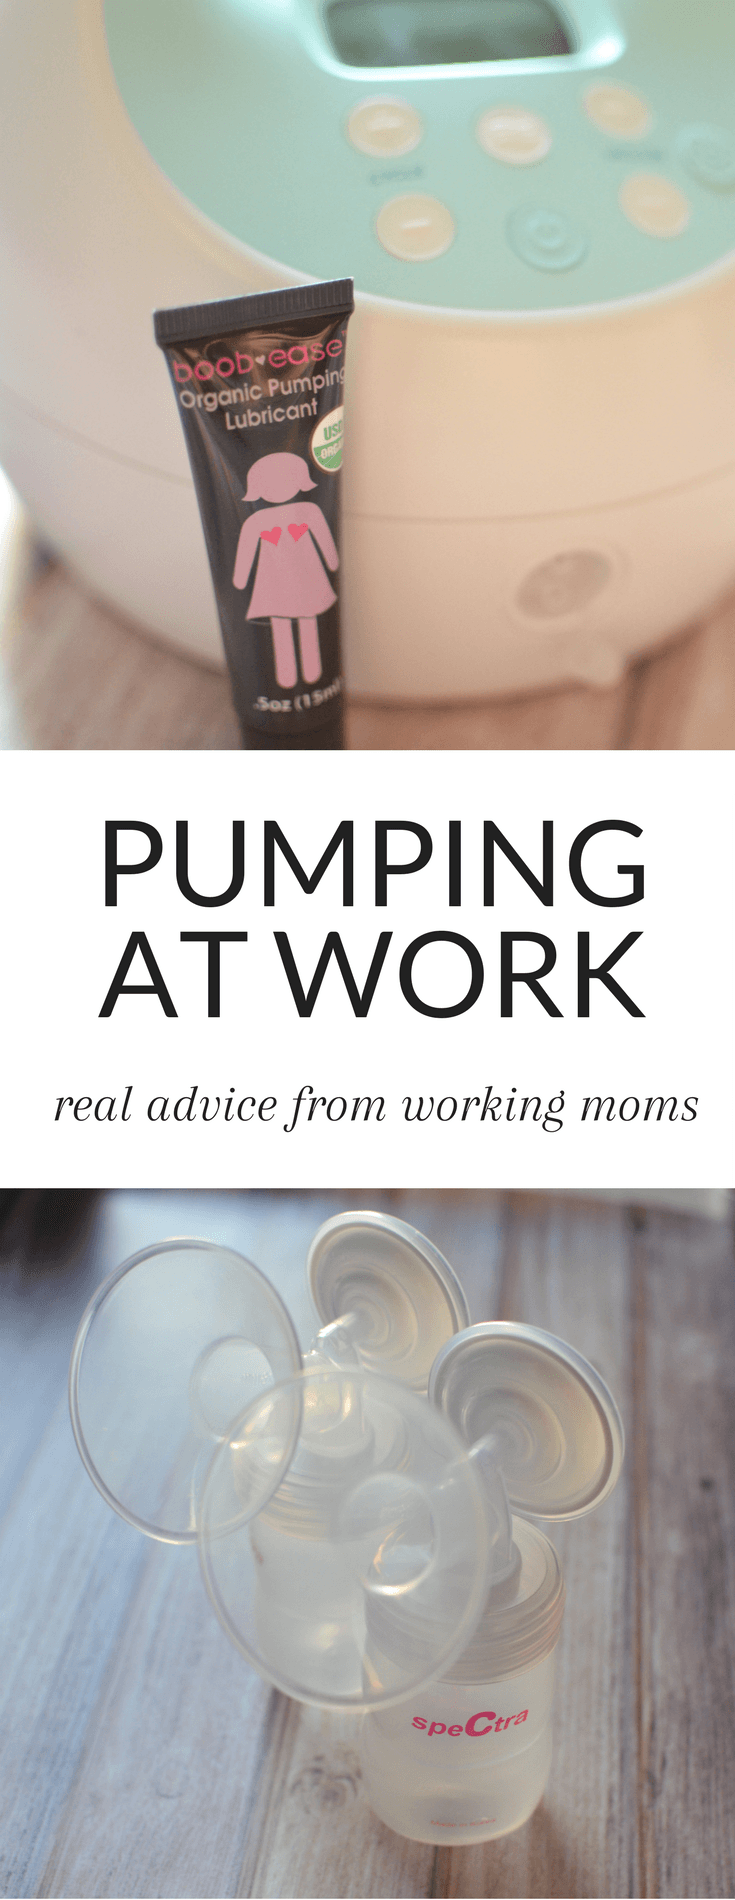 Working moms, are you going to be pumping at work? Get the best tips from moms who have been there - real advice from working moms on what they wish they knew about pumping at work!